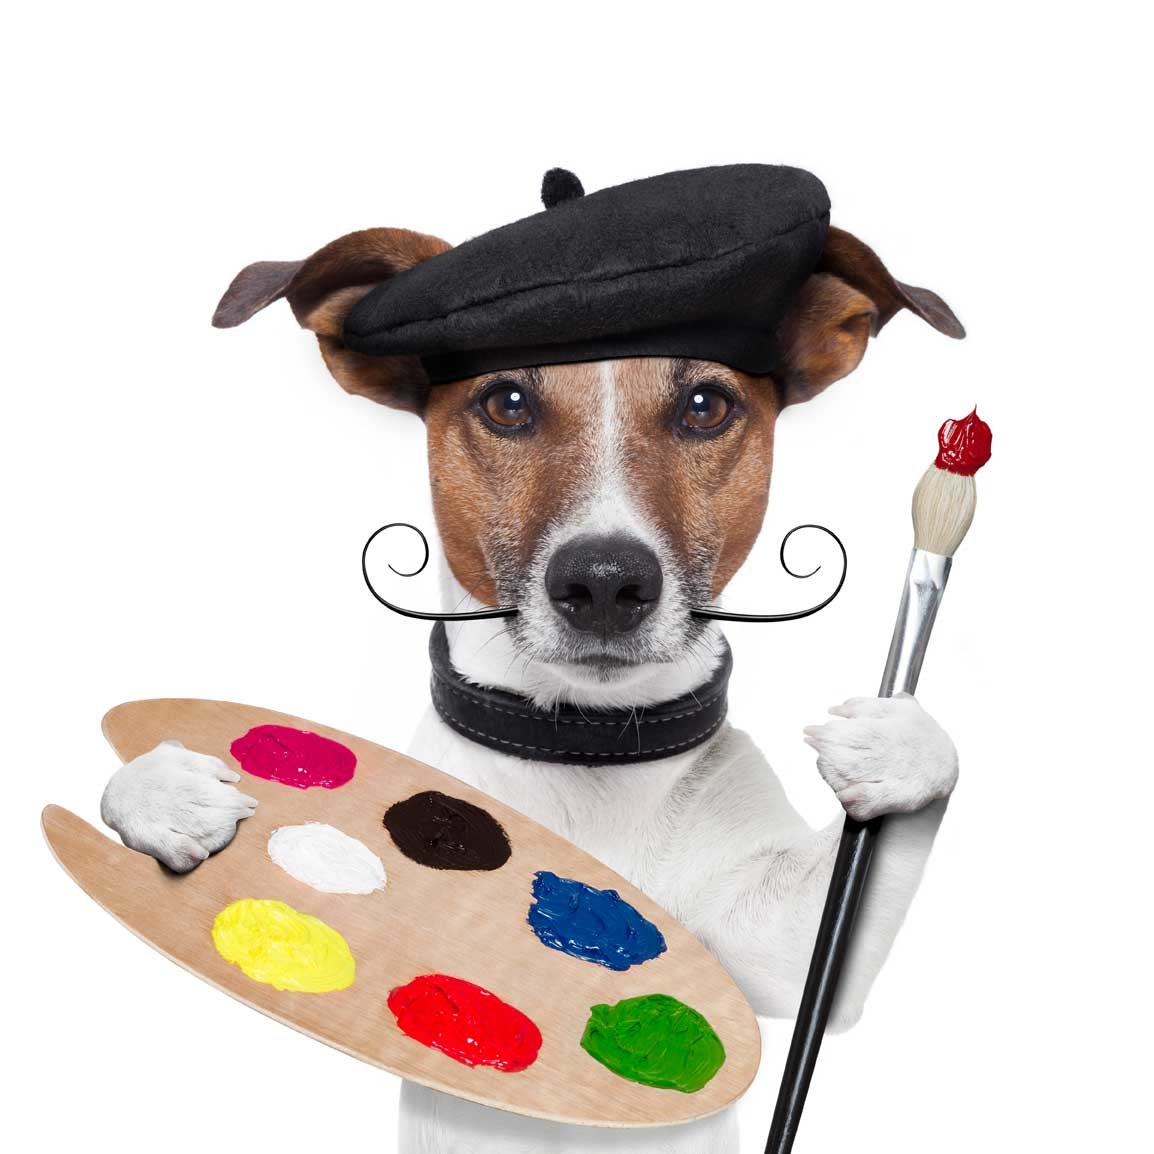 Dog dressed as artist